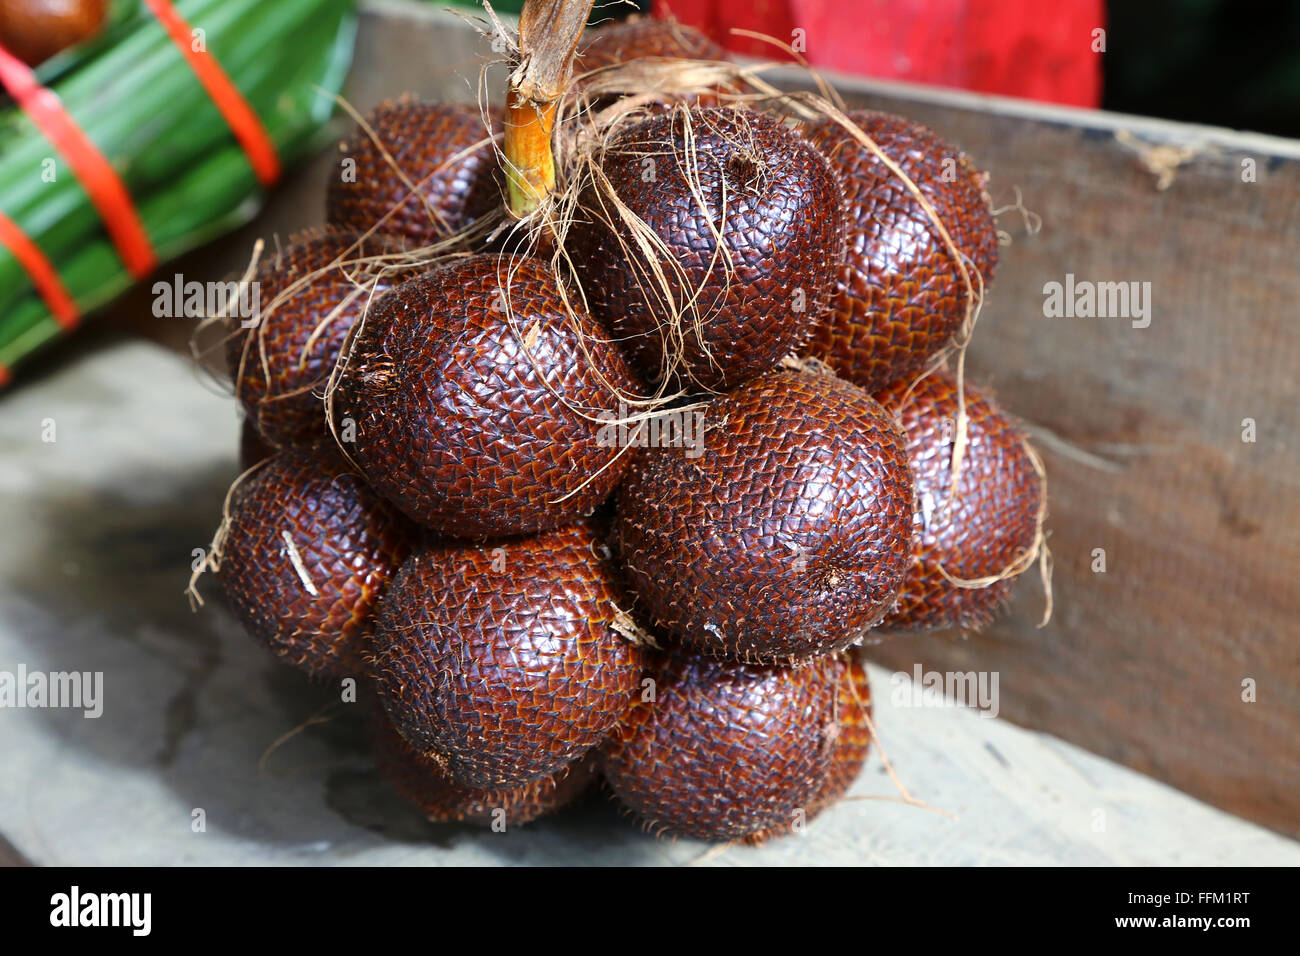 A bundle of salak, so called Snake Fruit, in Indonesia - Stock Image